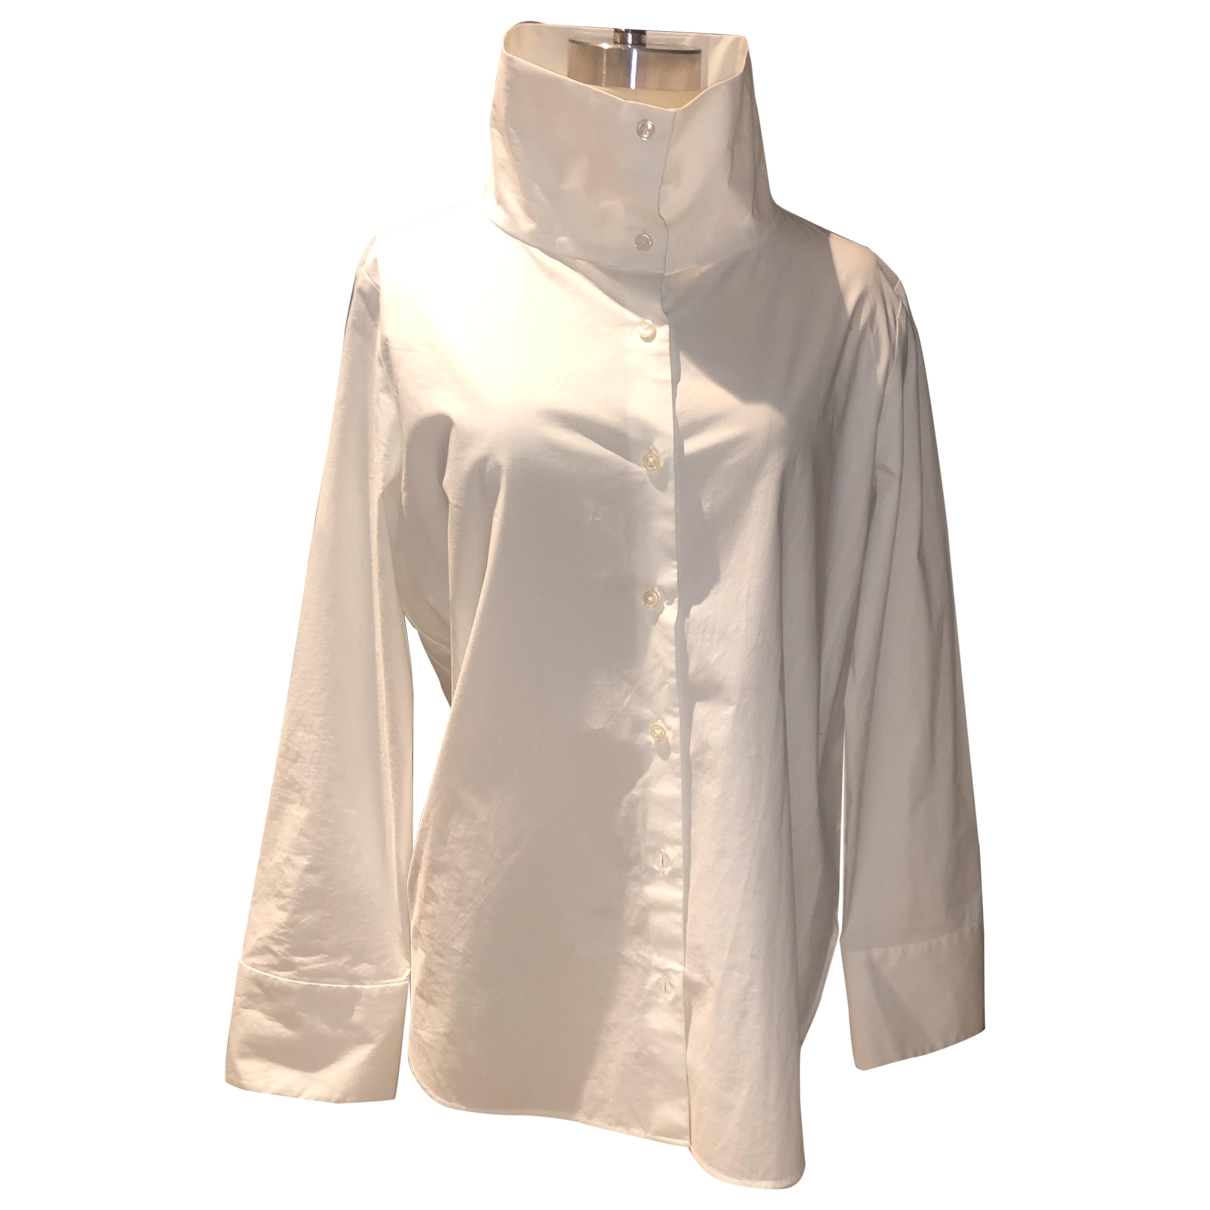 Cos \N White Cotton  top for Women 38 IT